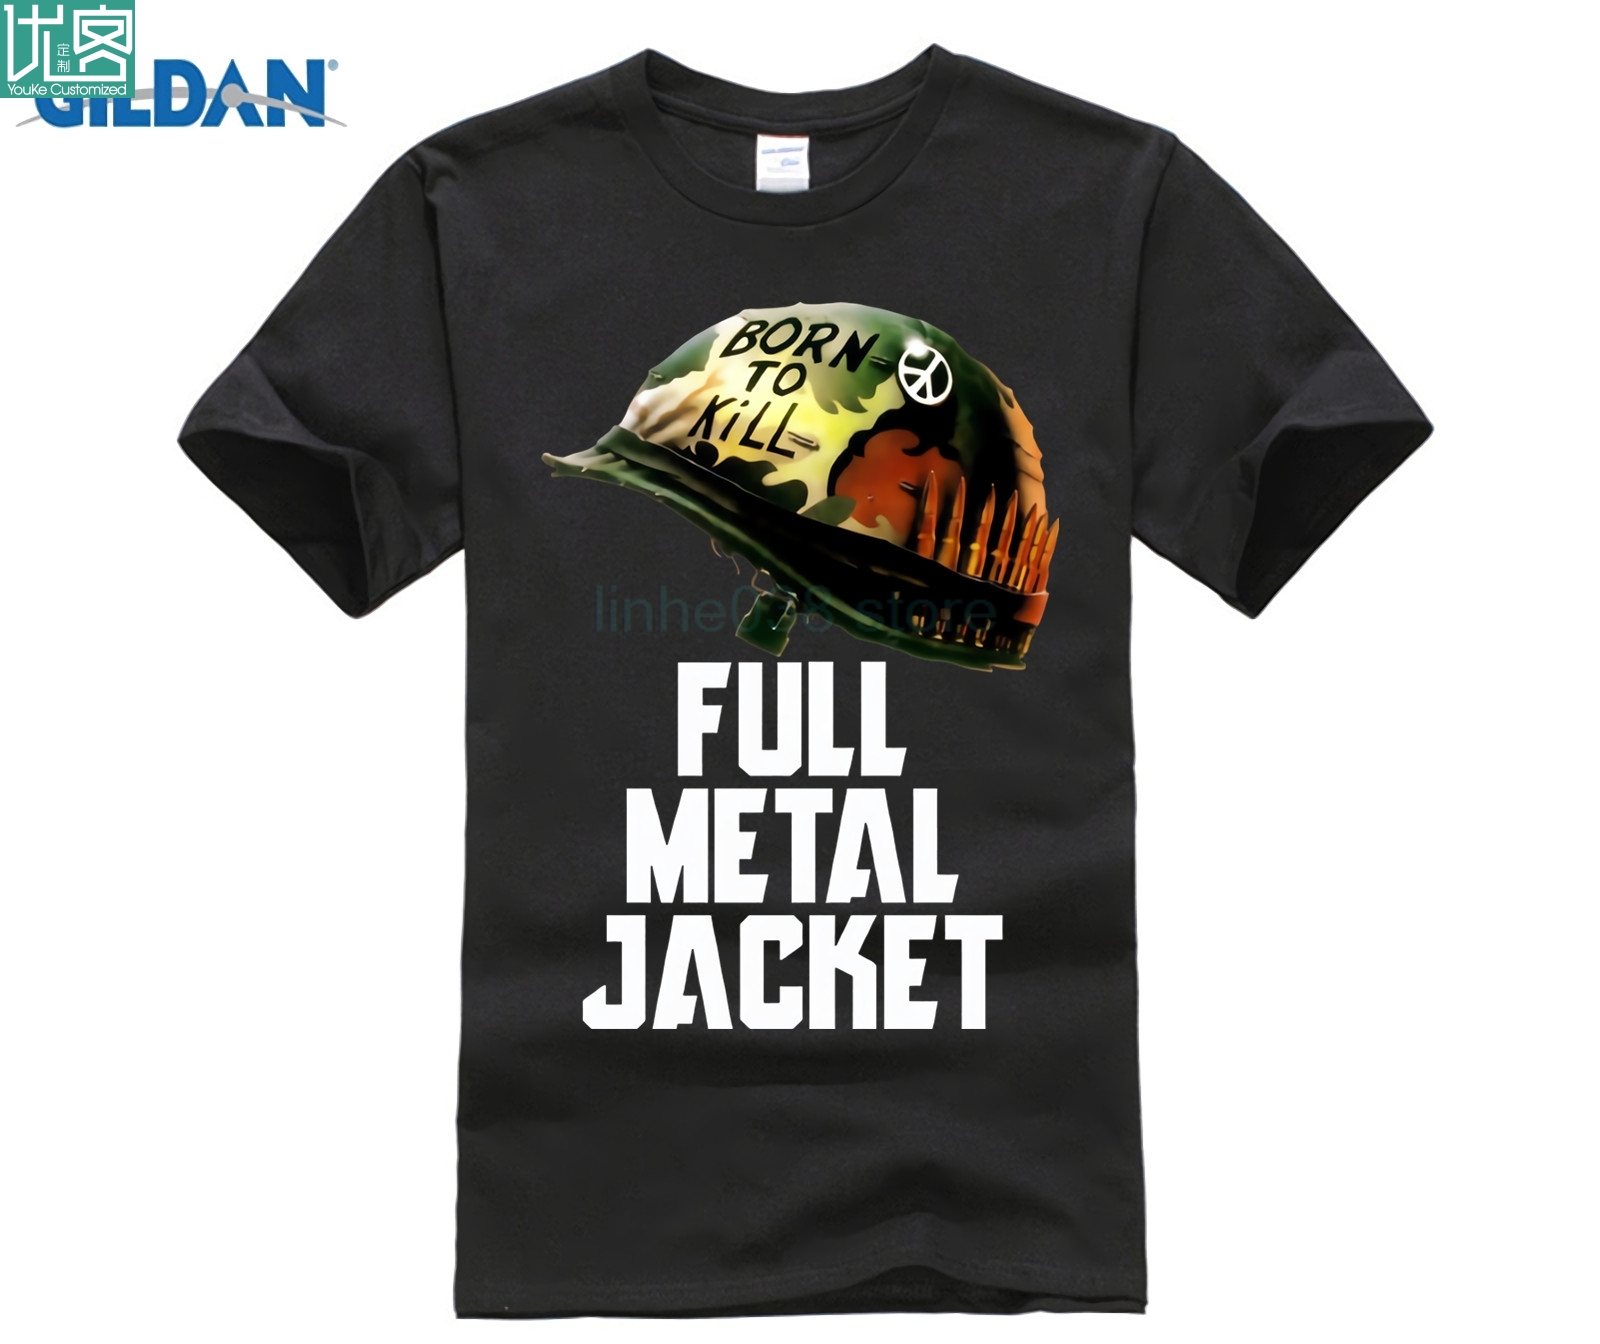 MEN T SHIRT FULL METAL JACKET BORN TO KILL Men 39 s Tshirts VINTAGE MOVIE Cotton Tees size S XXXL in T Shirts from Men 39 s Clothing